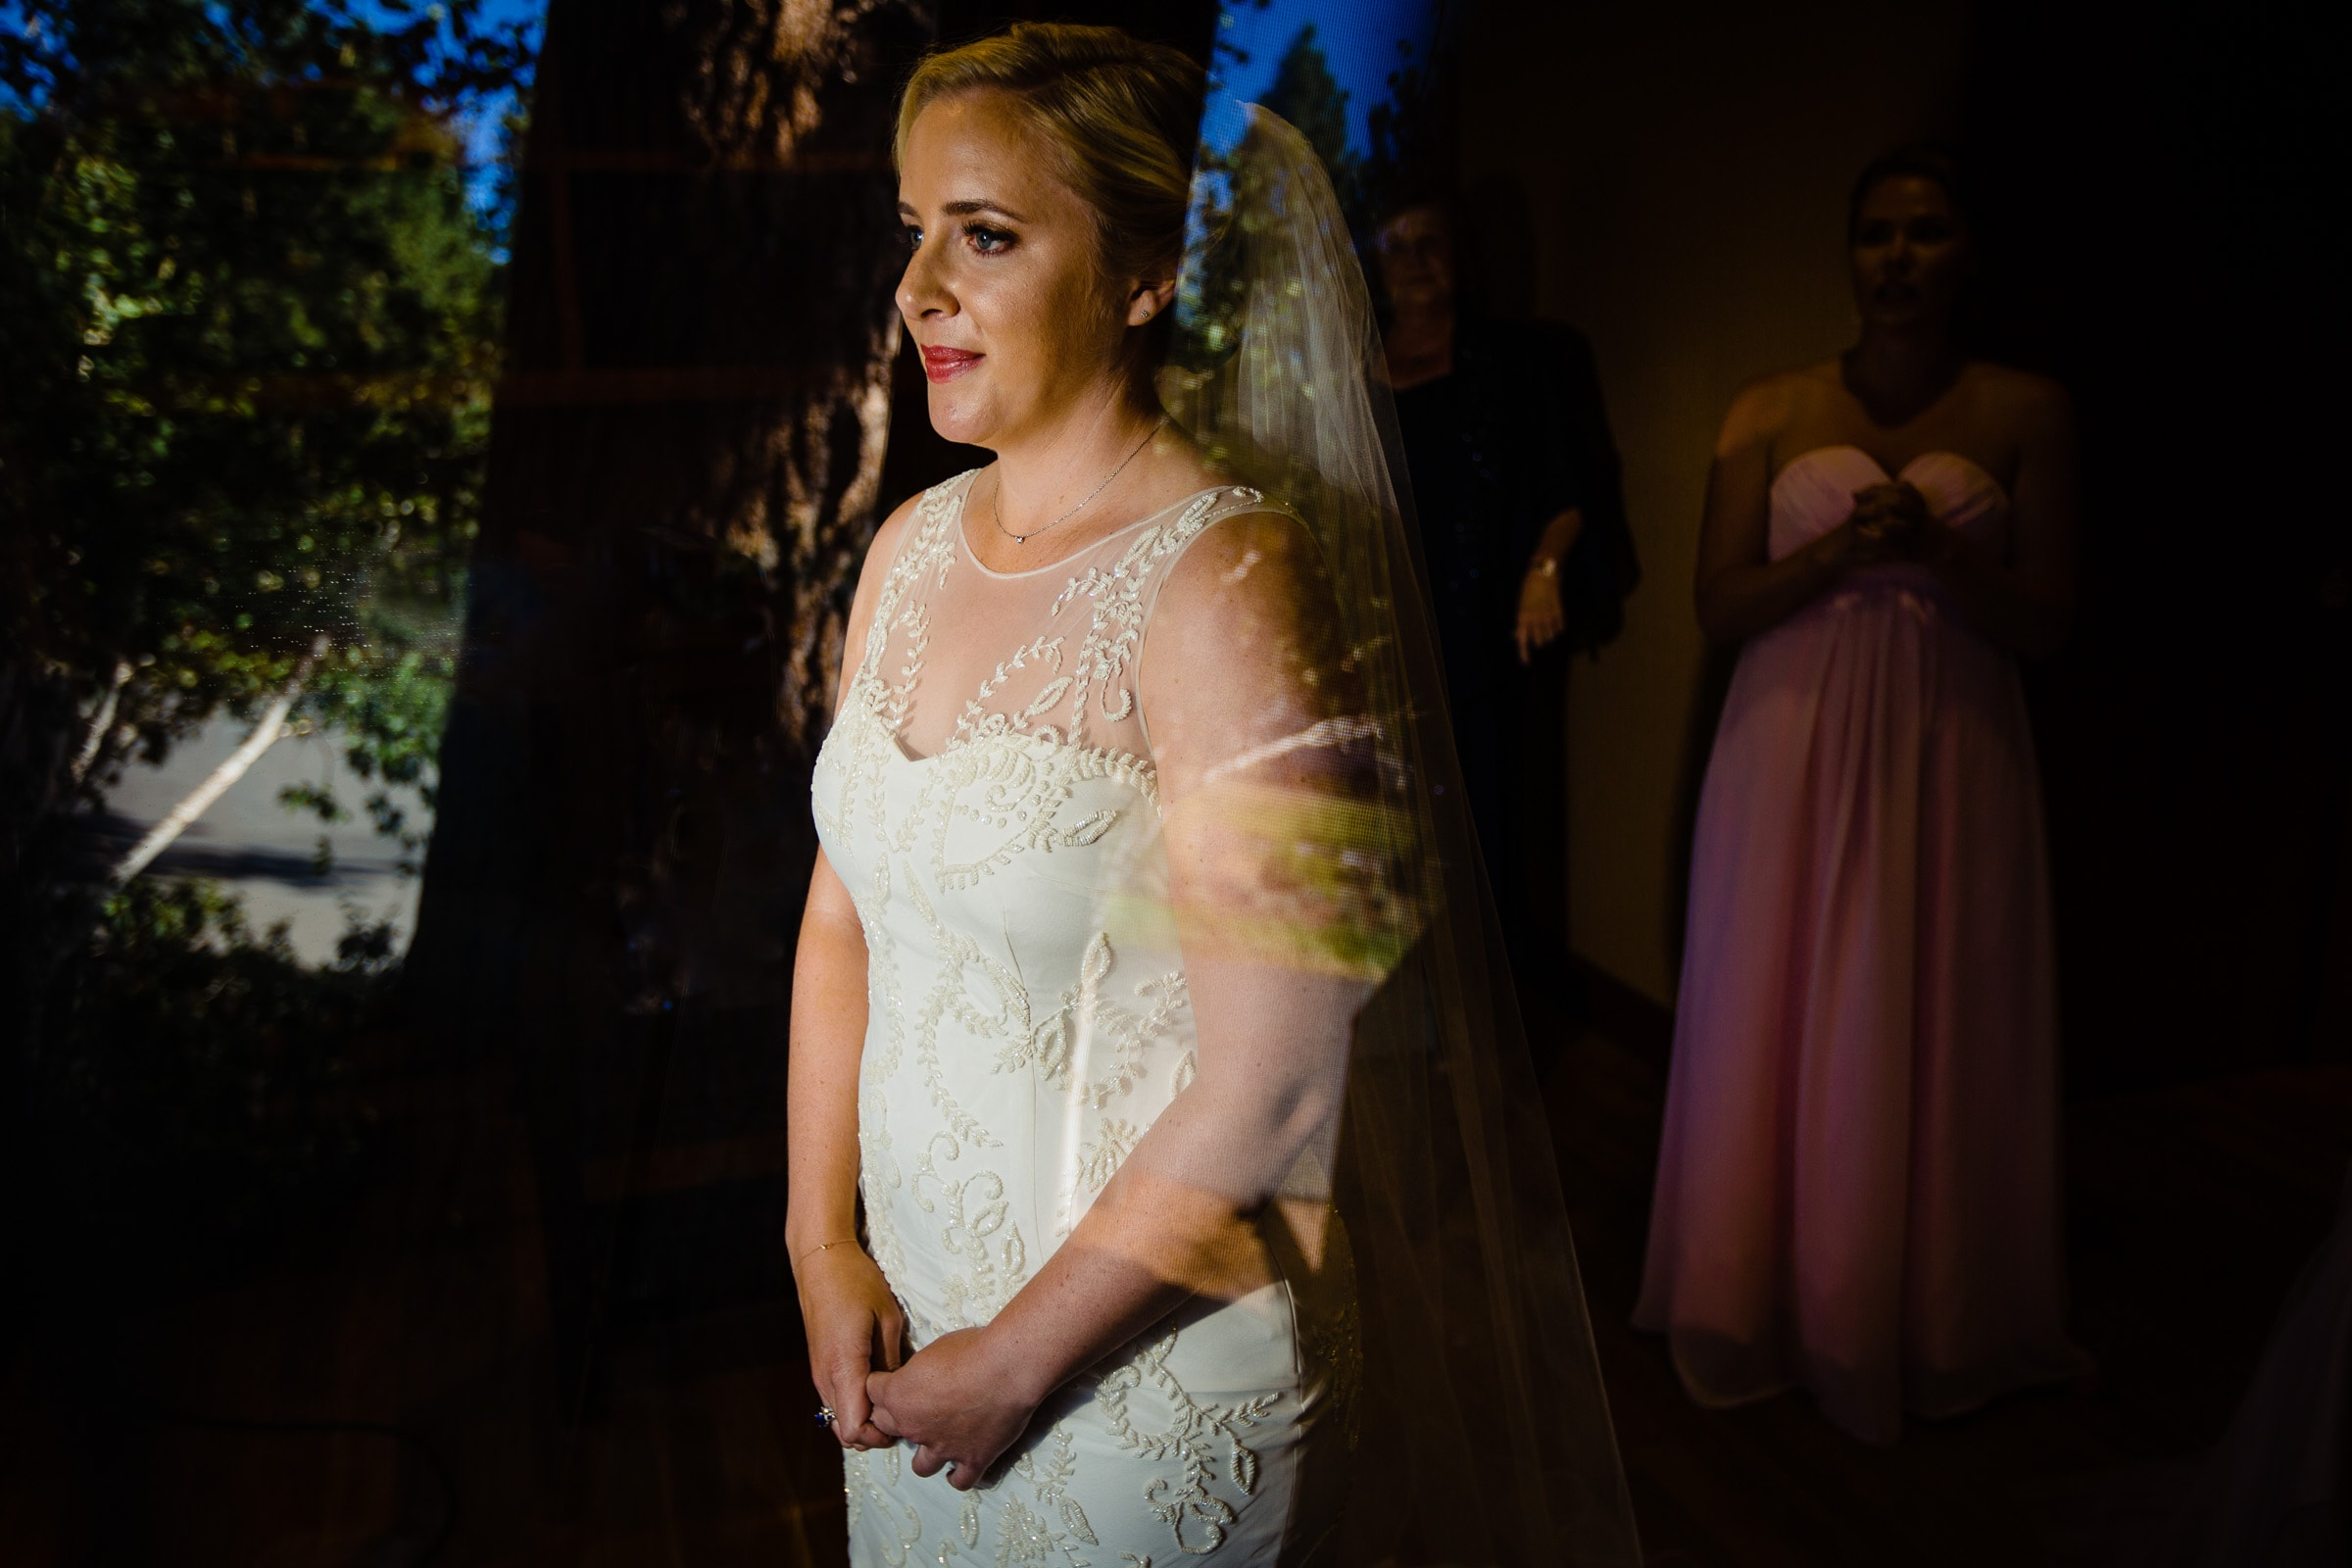 Beautiful bride and creative light about to sep into her Black Butte Ranch wedding in Central Oregon